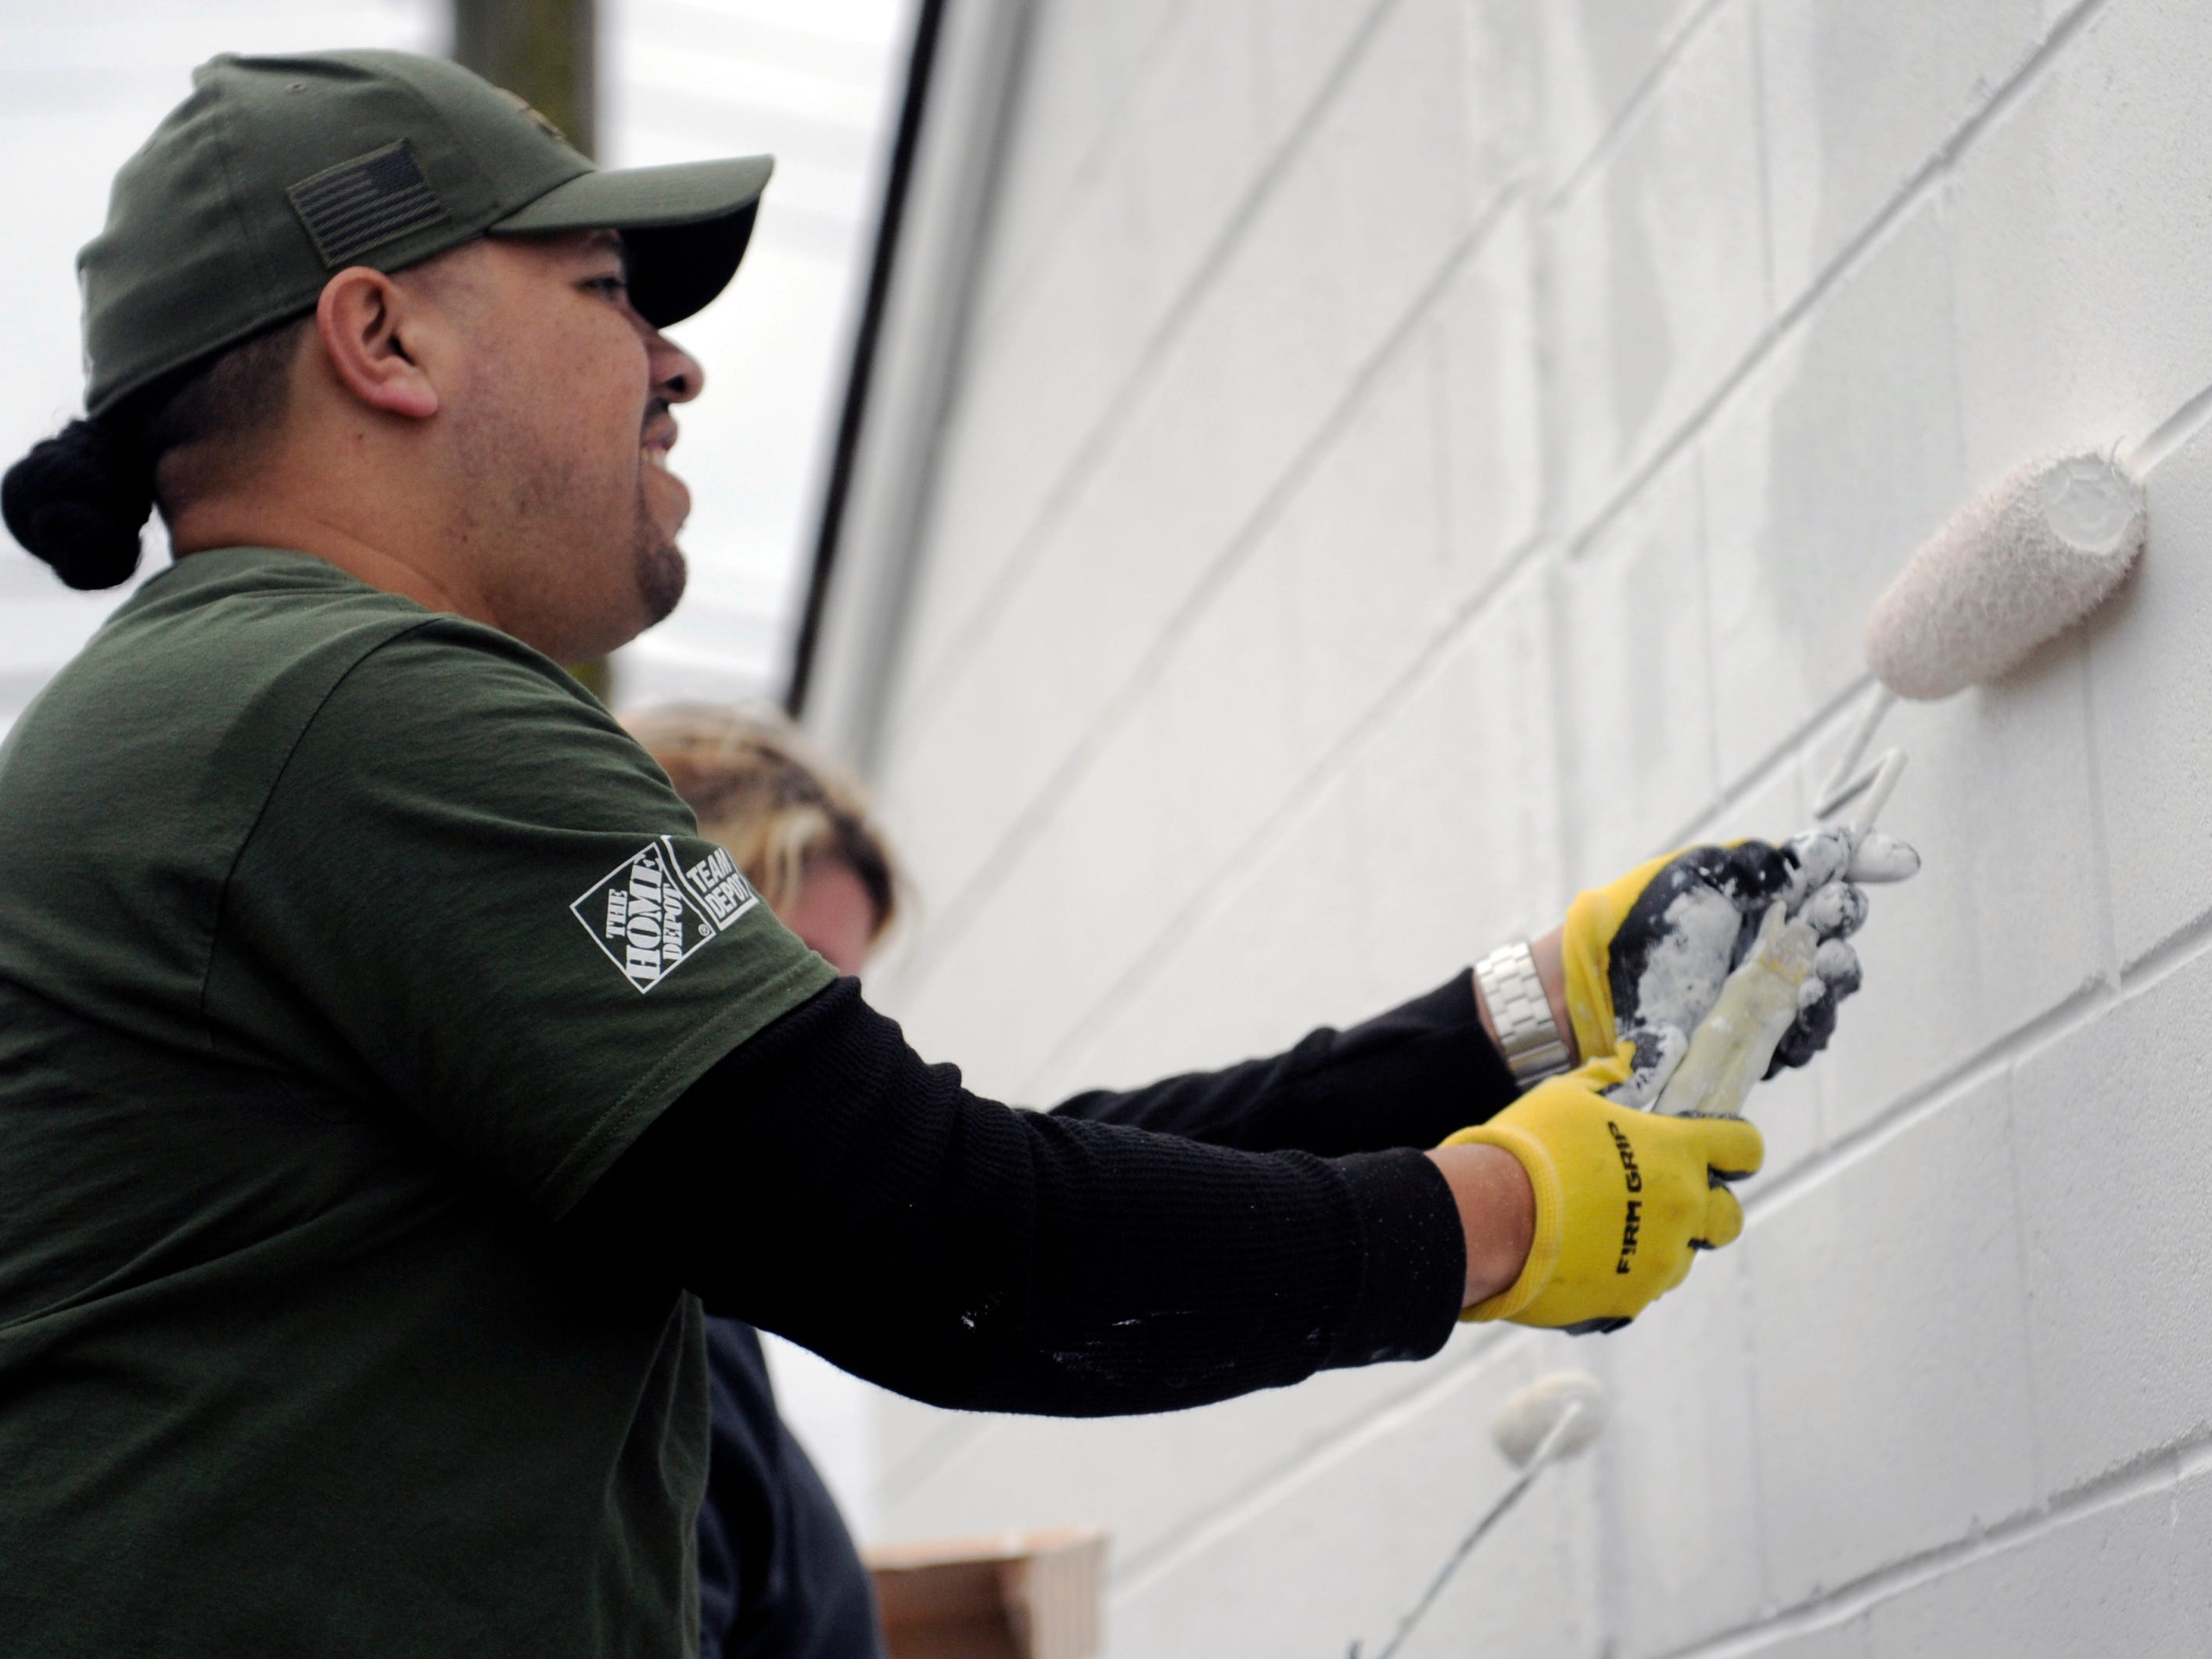 Oscar Alvarado, Lawnside Home Depot overnight supervisor, helps paint a wall during a special building renovation event at Millville Army Airfield Museum on Friday, November 9, 2018.